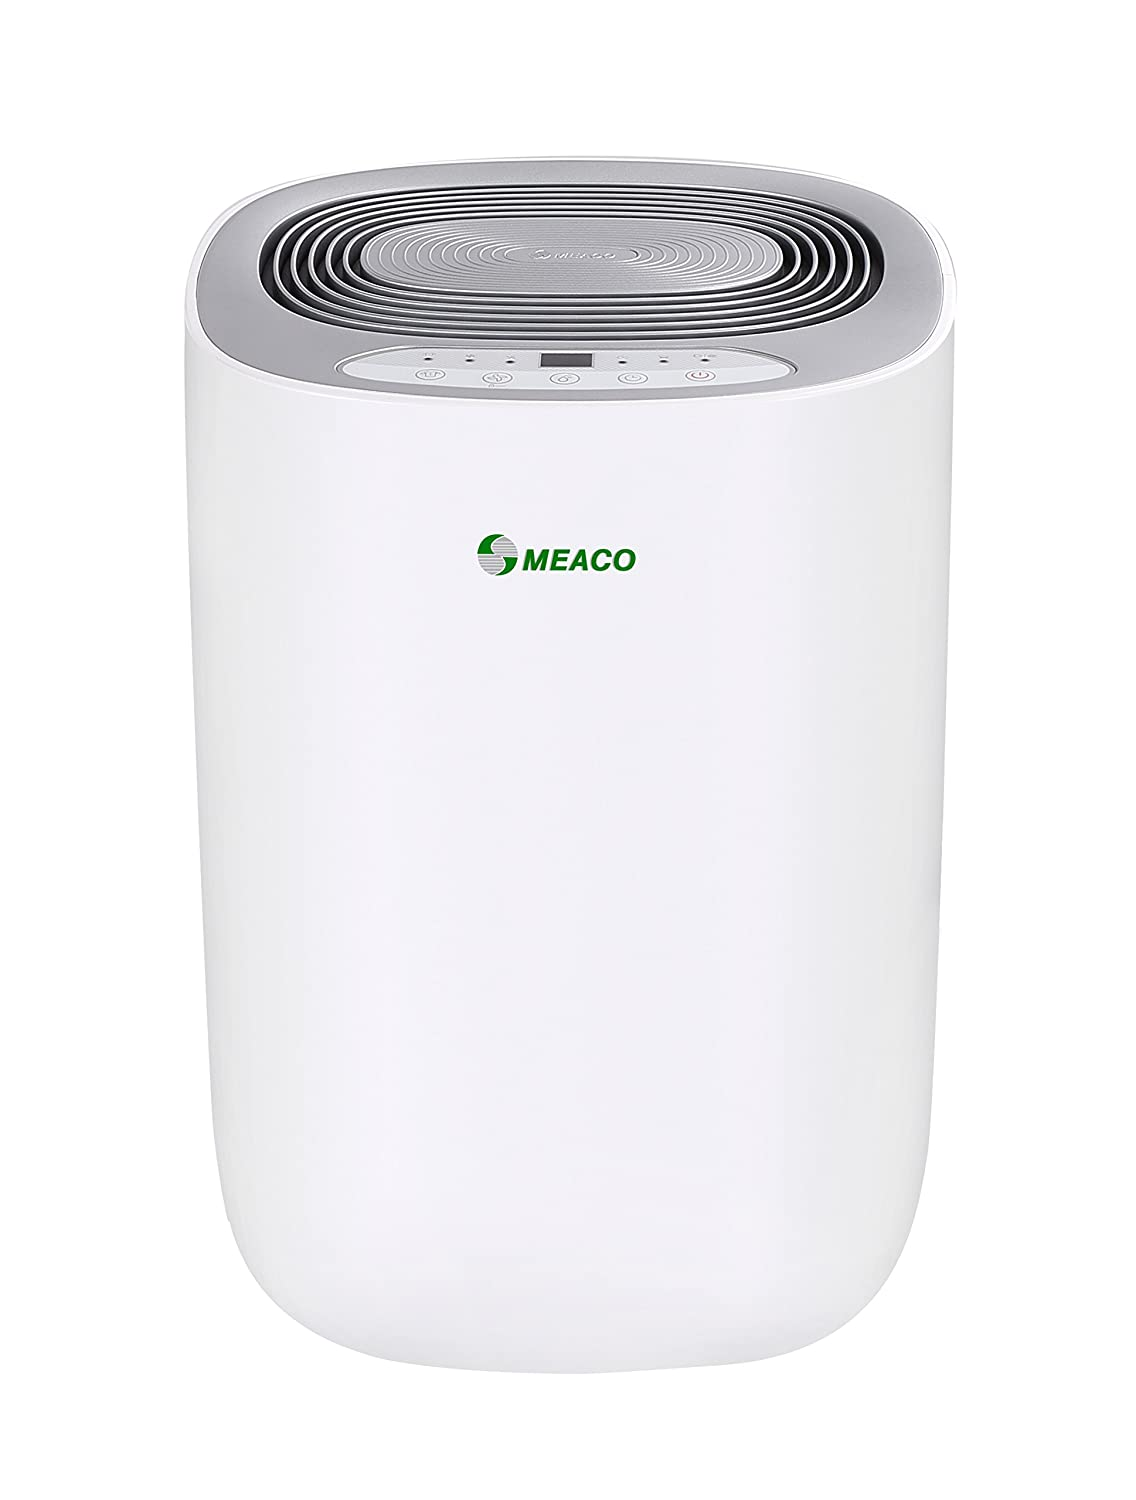 Meaco MeacoDry Dehumidifier ABC Range 12LB (Black) Ultra-Quiet, Energy Efficient, Laundry Mode, Auto-off, Choice of Five Colours, Ideal for Damp and Condensation in the Home